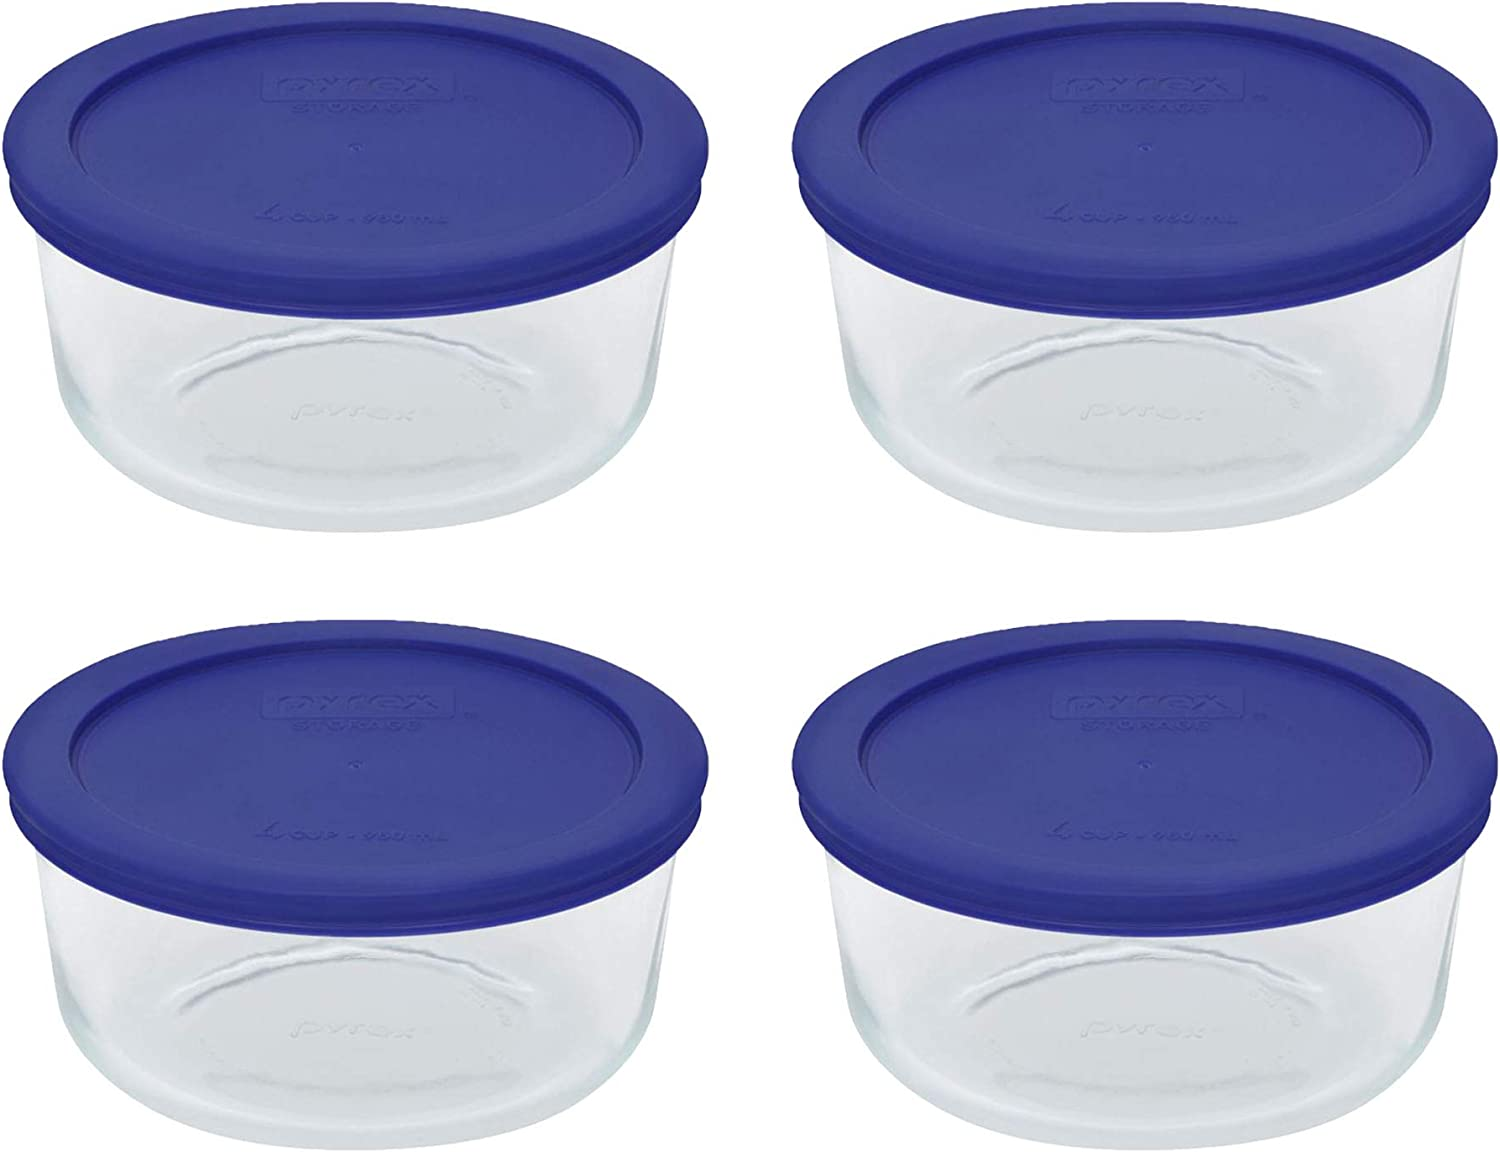 Pyrex Storage 4-Cup Round Dish, Clear with Cadet Blue Plastic Lids, Pack of 4 Containers